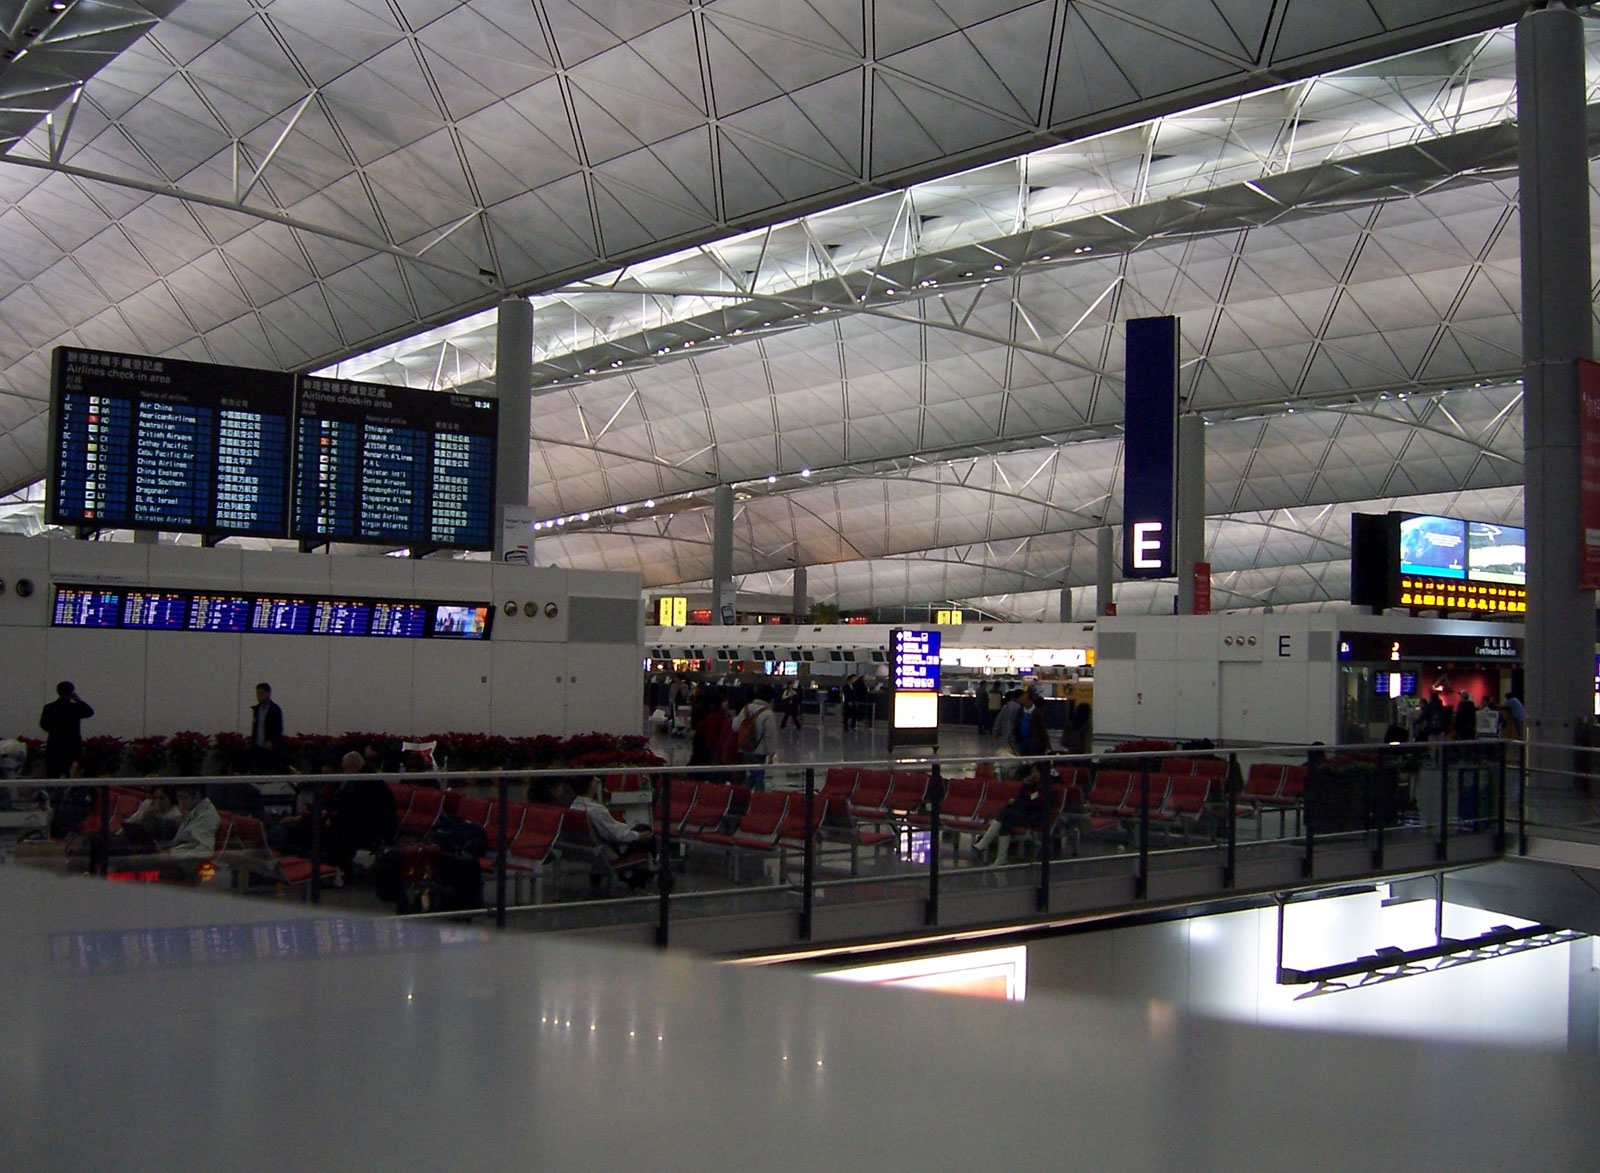 Inside International Airport, Browse Info On Inside ...